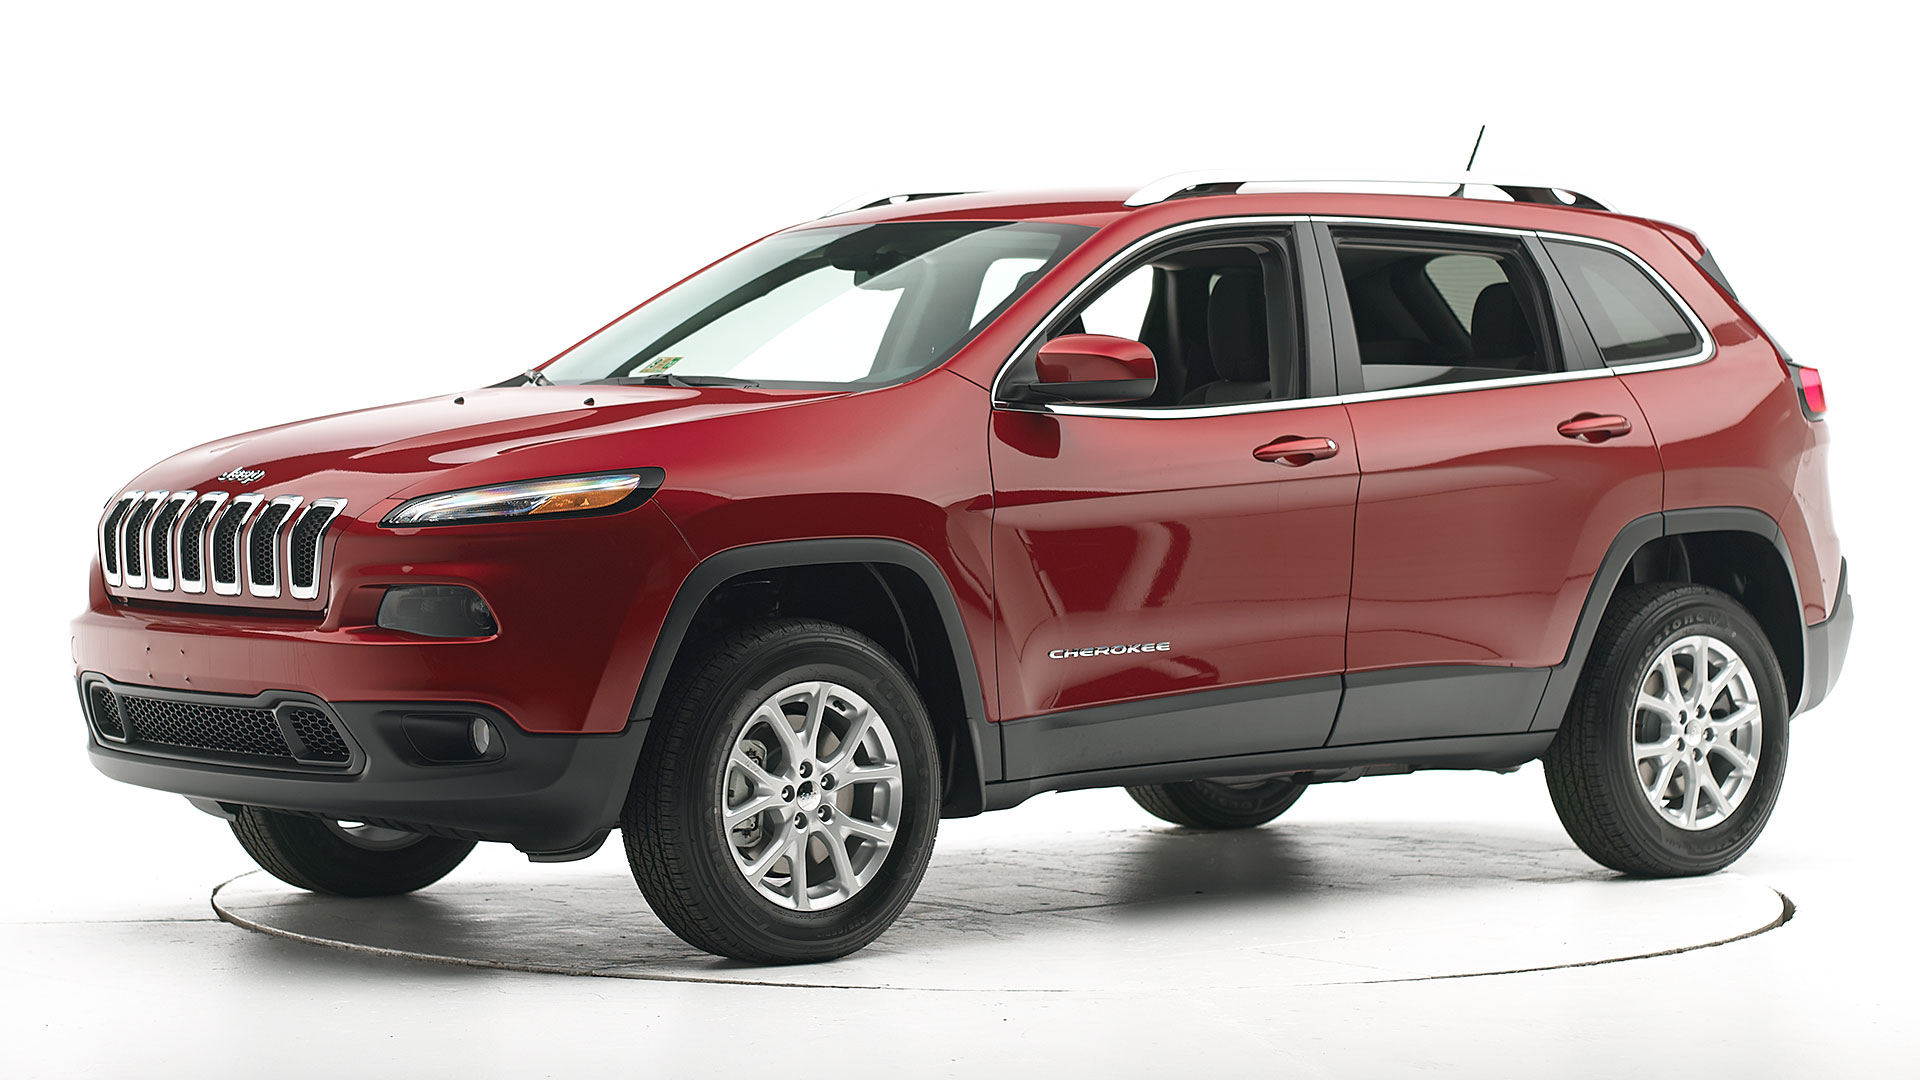 2014 Jeep Cherokee 4-door SUV